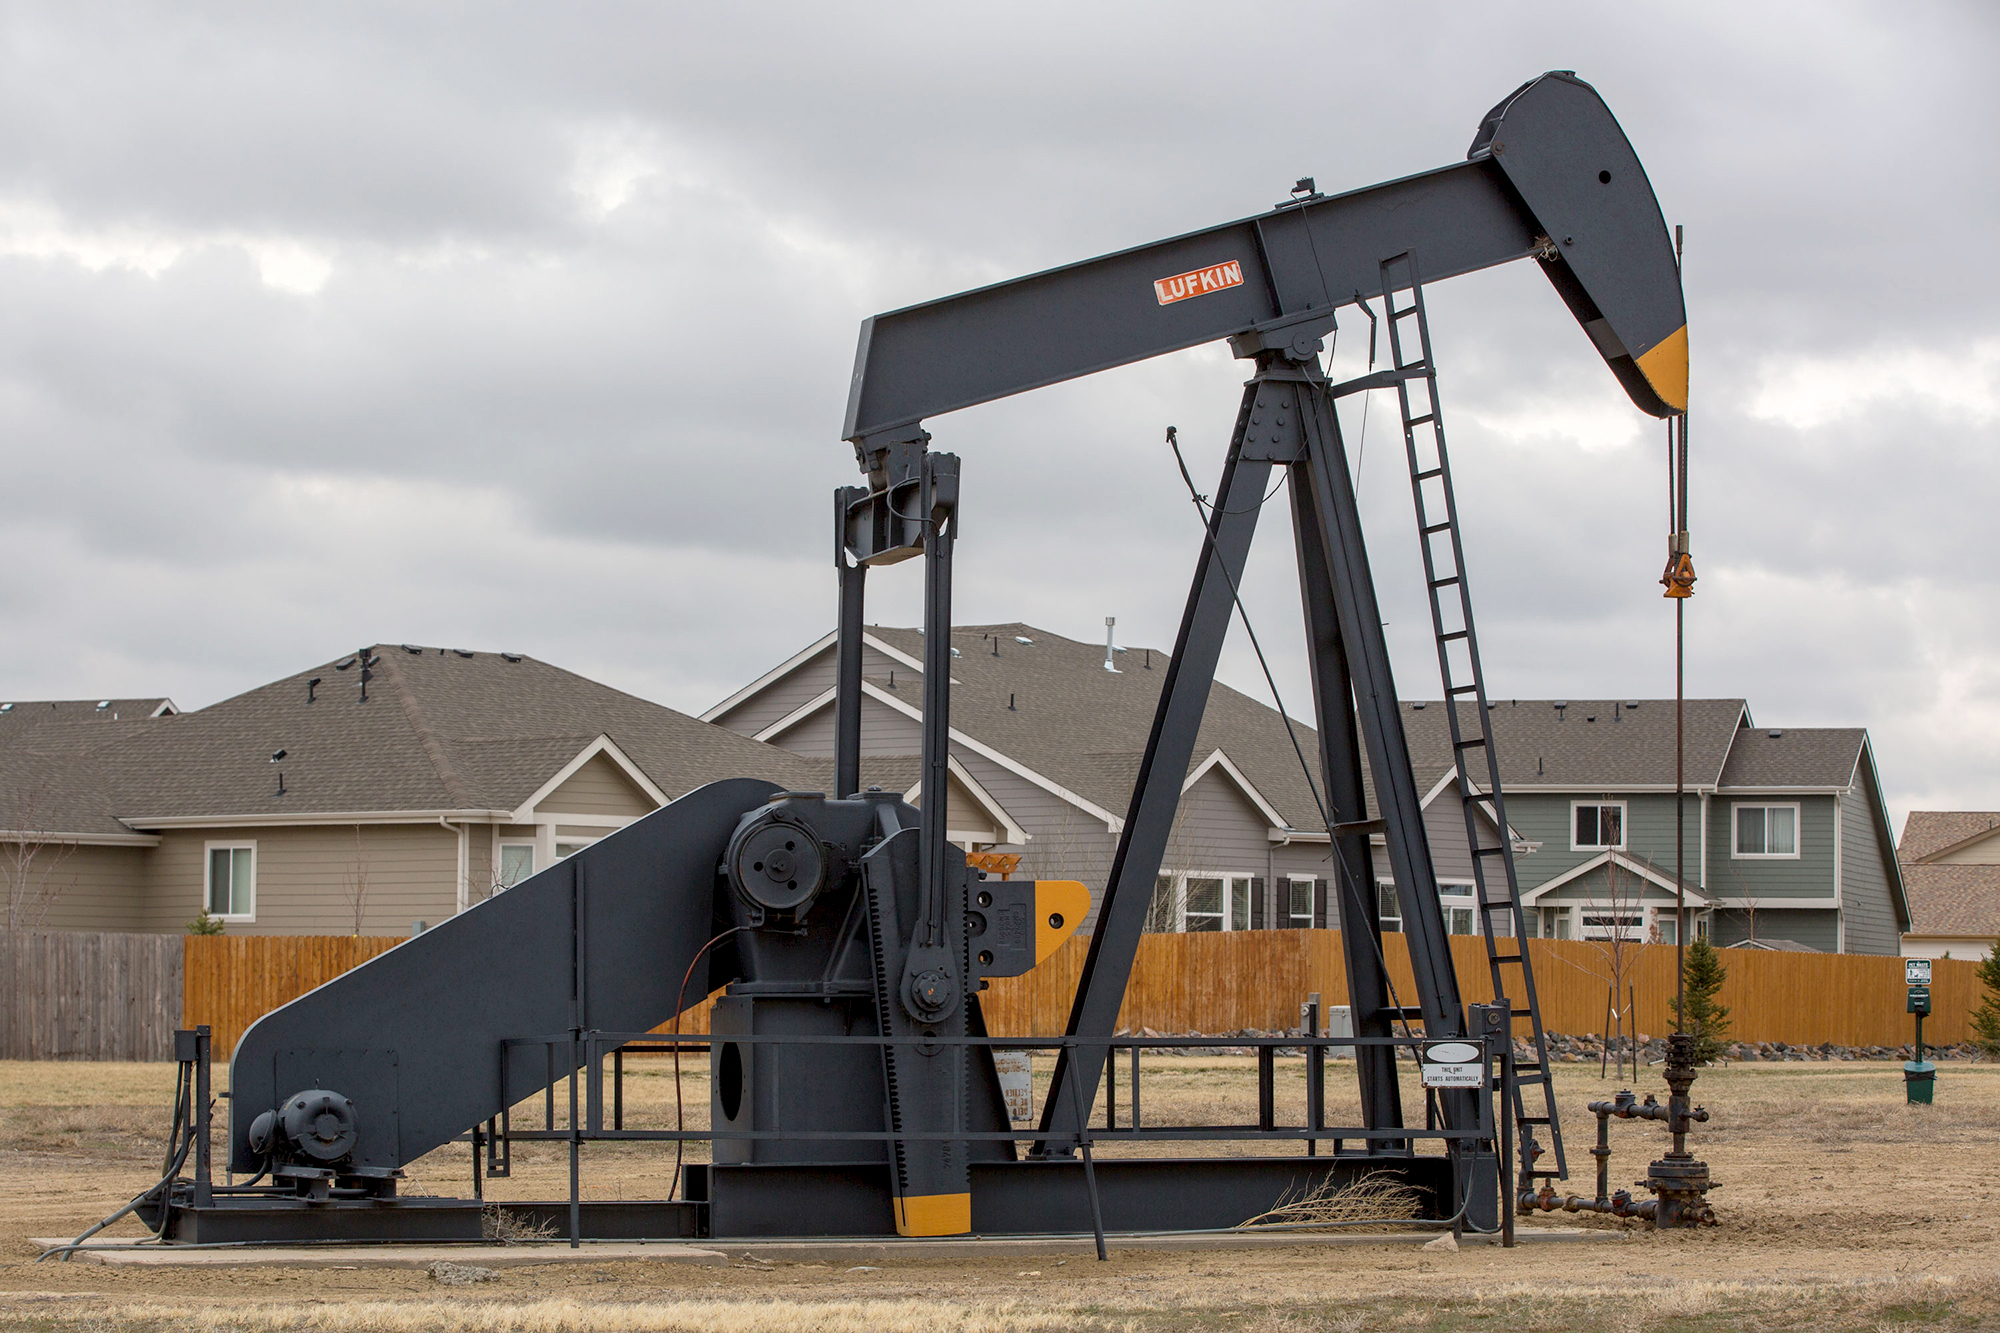 A pump jack in a traffic circle at 6th Street and Garfield Street, next to the Sharpe Farms housing development in Firestone on April 2, 2019.